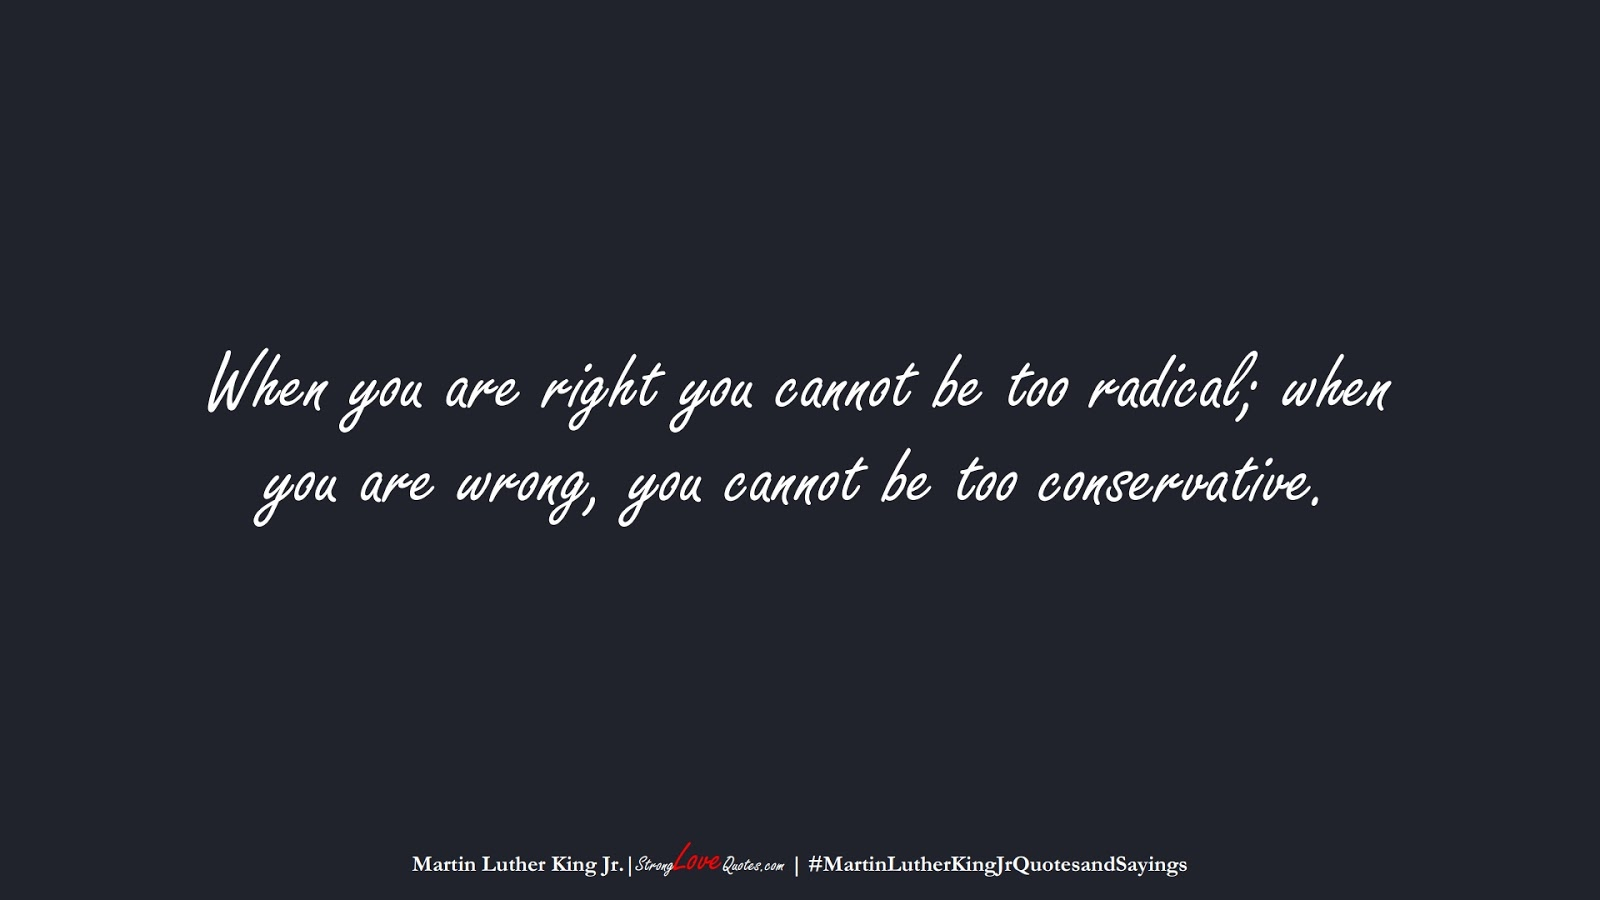 When you are right you cannot be too radical; when you are wrong, you cannot be too conservative. (Martin Luther King Jr.);  #MartinLutherKingJrQuotesandSayings